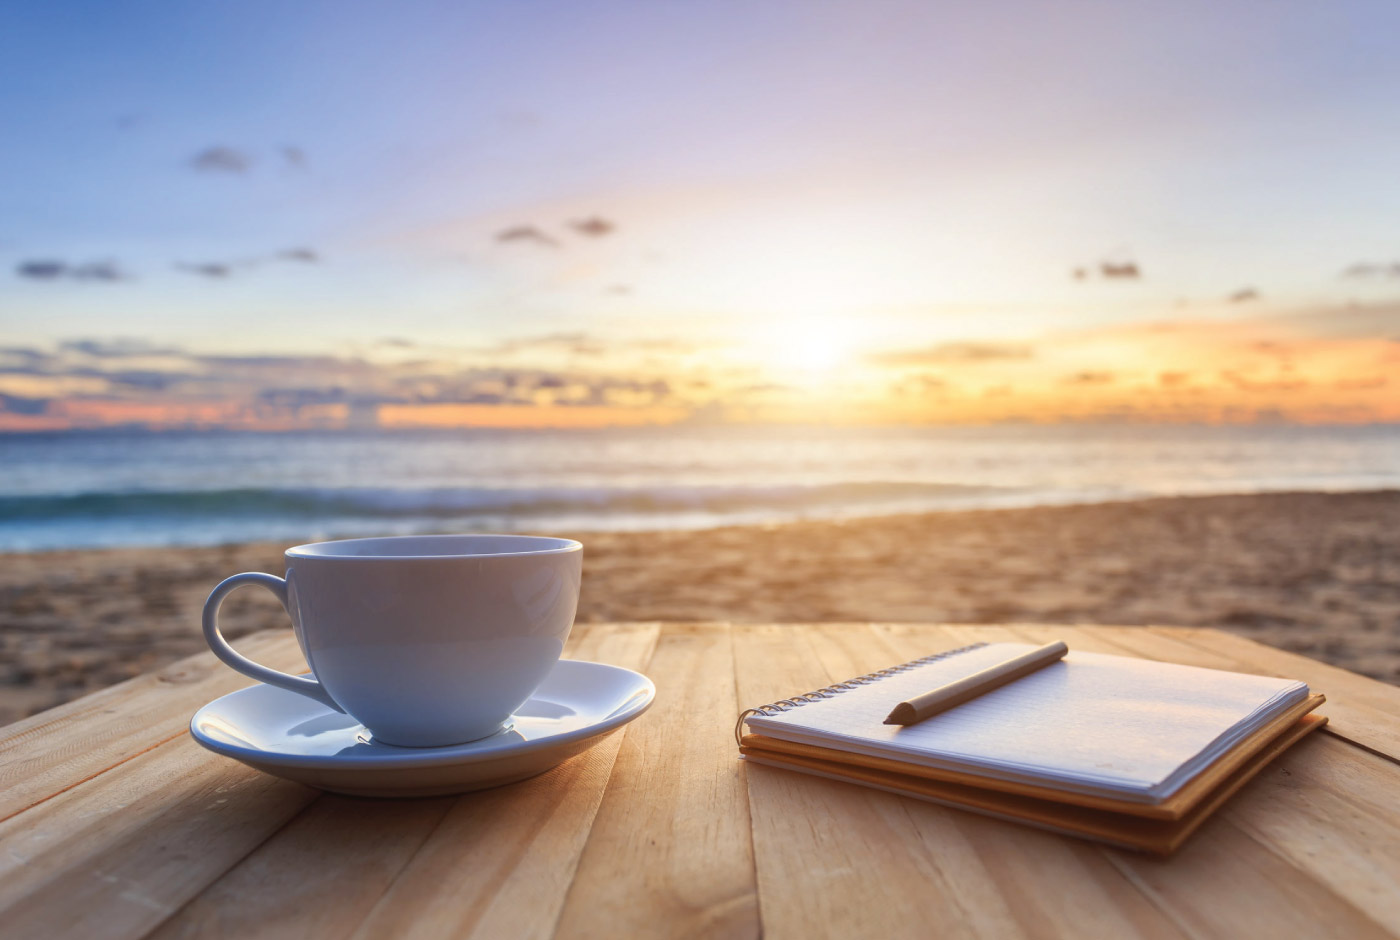 7 Minute Sales Minute Podcast - Season 11 - Episode 3 - Get On The Good Foot - Coffee and notepad on beach at sunrise